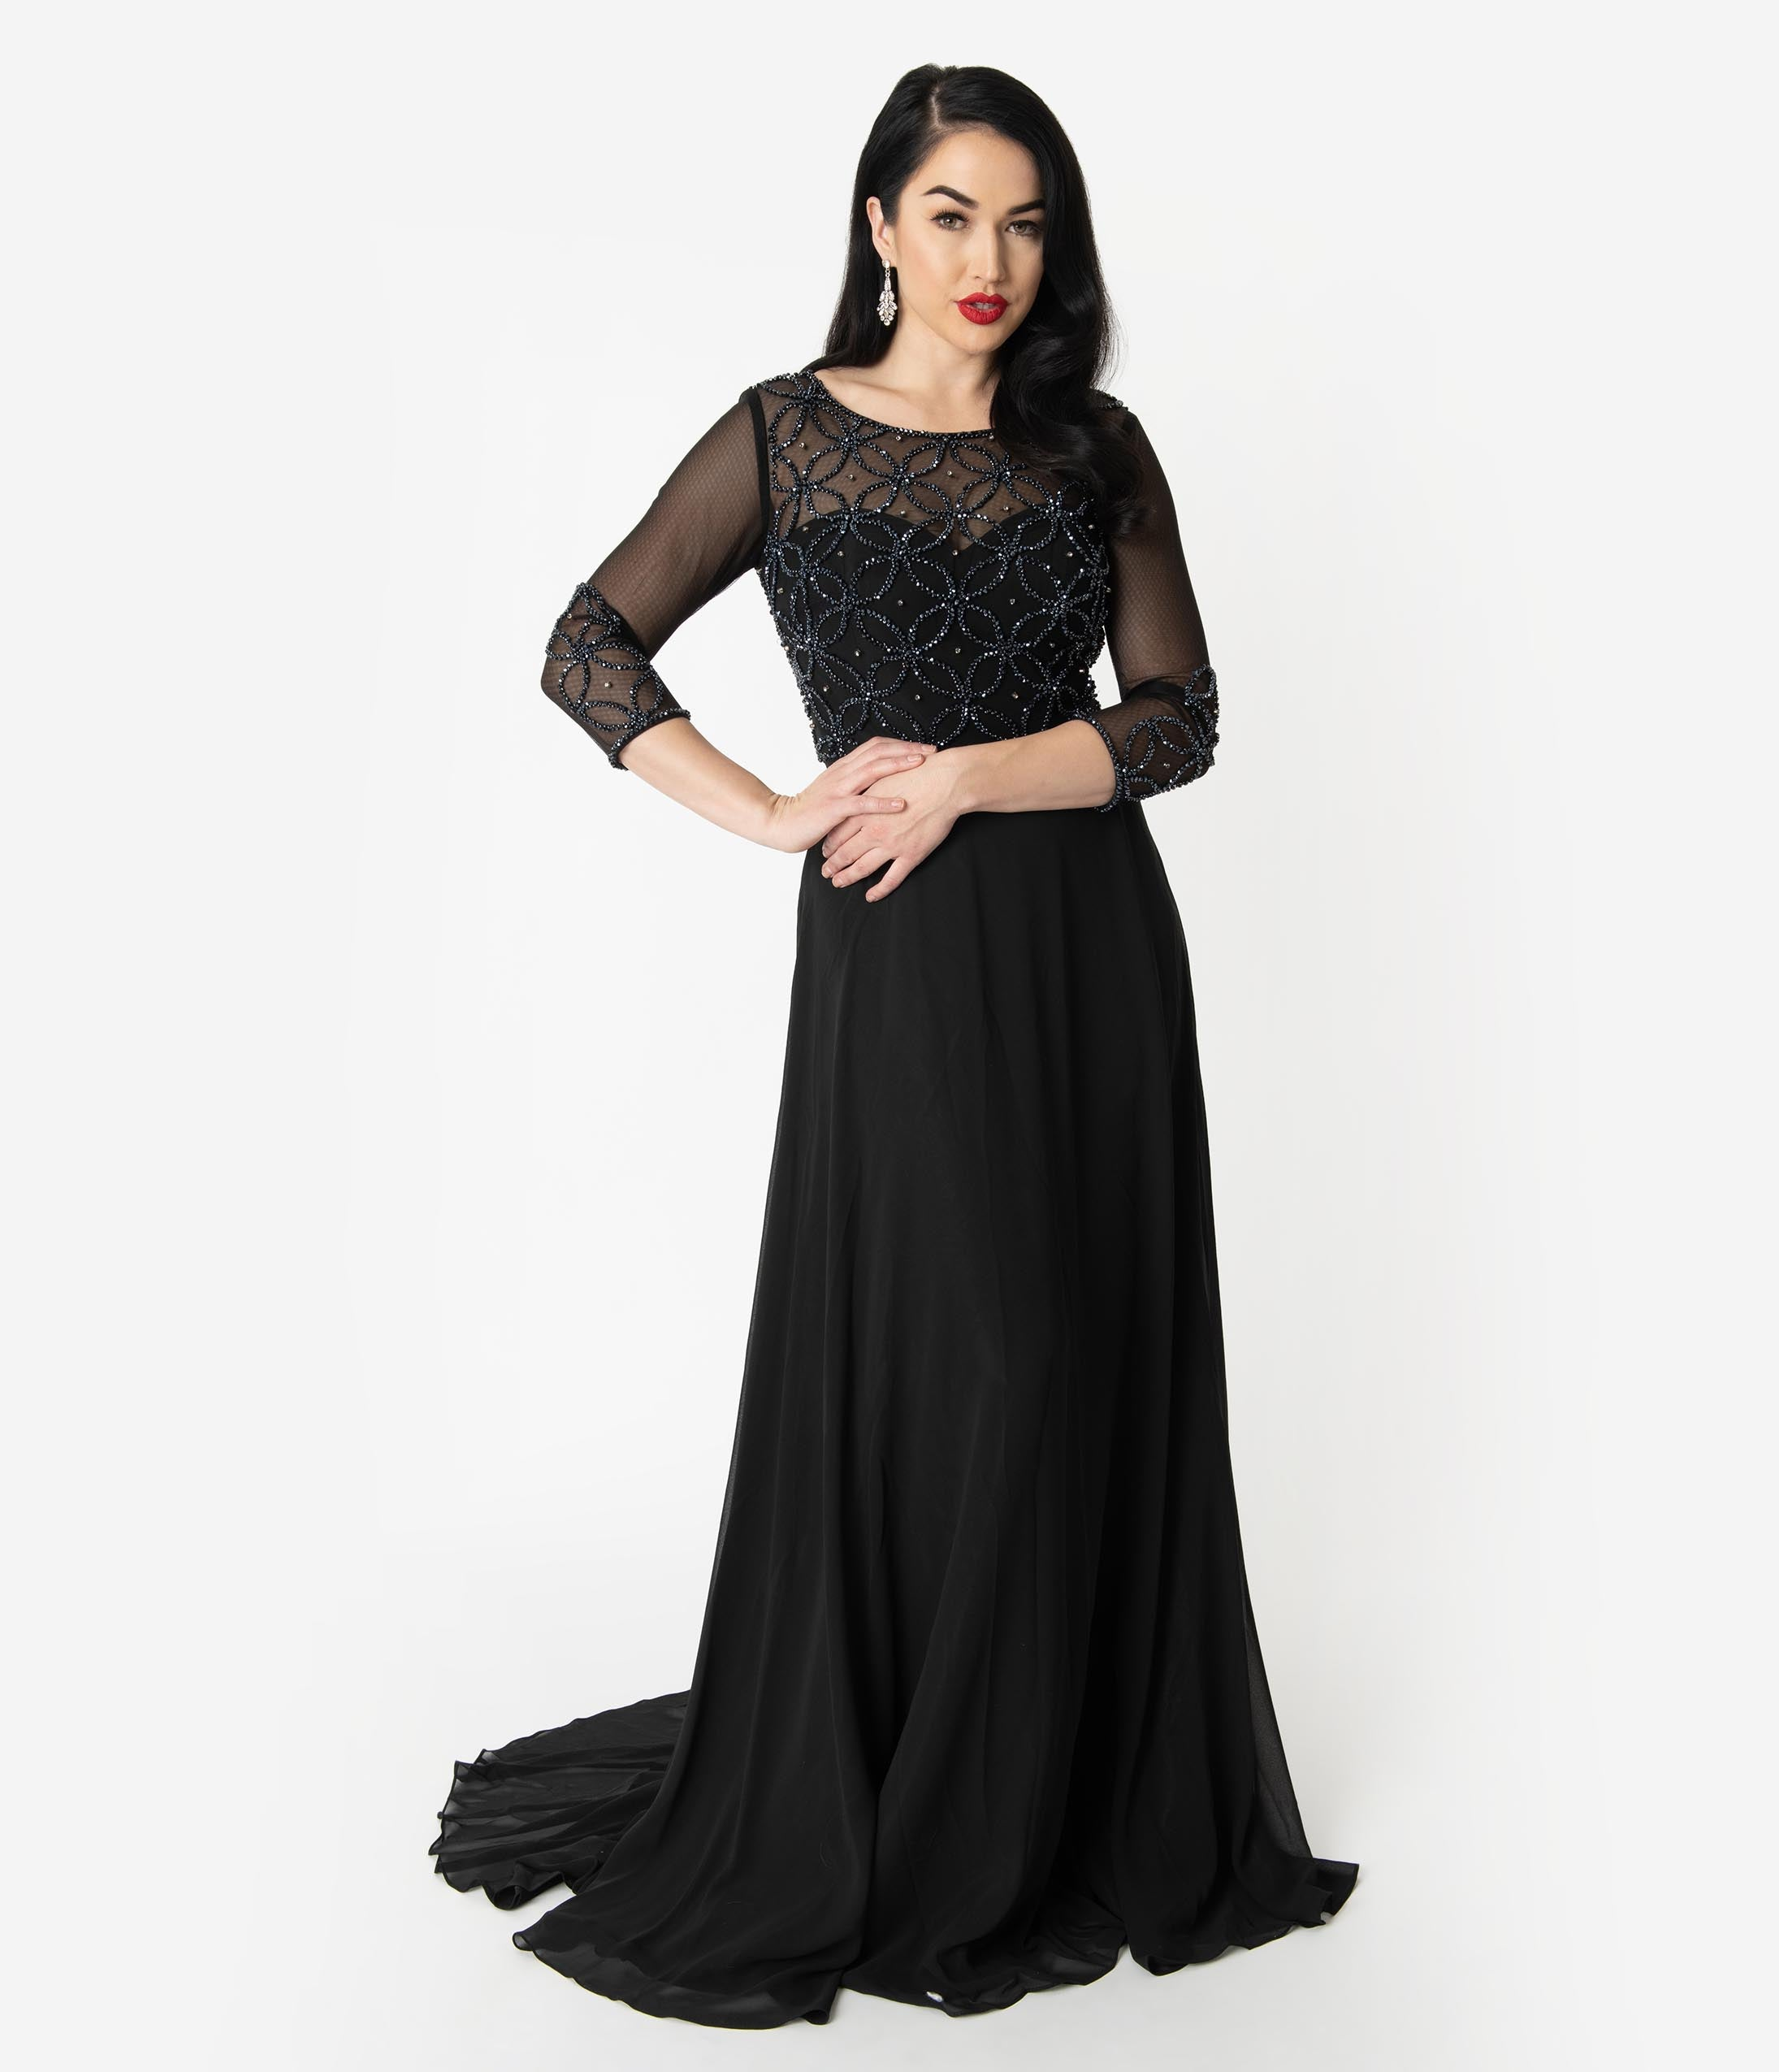 1930s Dresses | 30s Art Deco Dress Black Illusion Neckline Sparkle Sleeved Chiffon Long Dress $110.00 AT vintagedancer.com